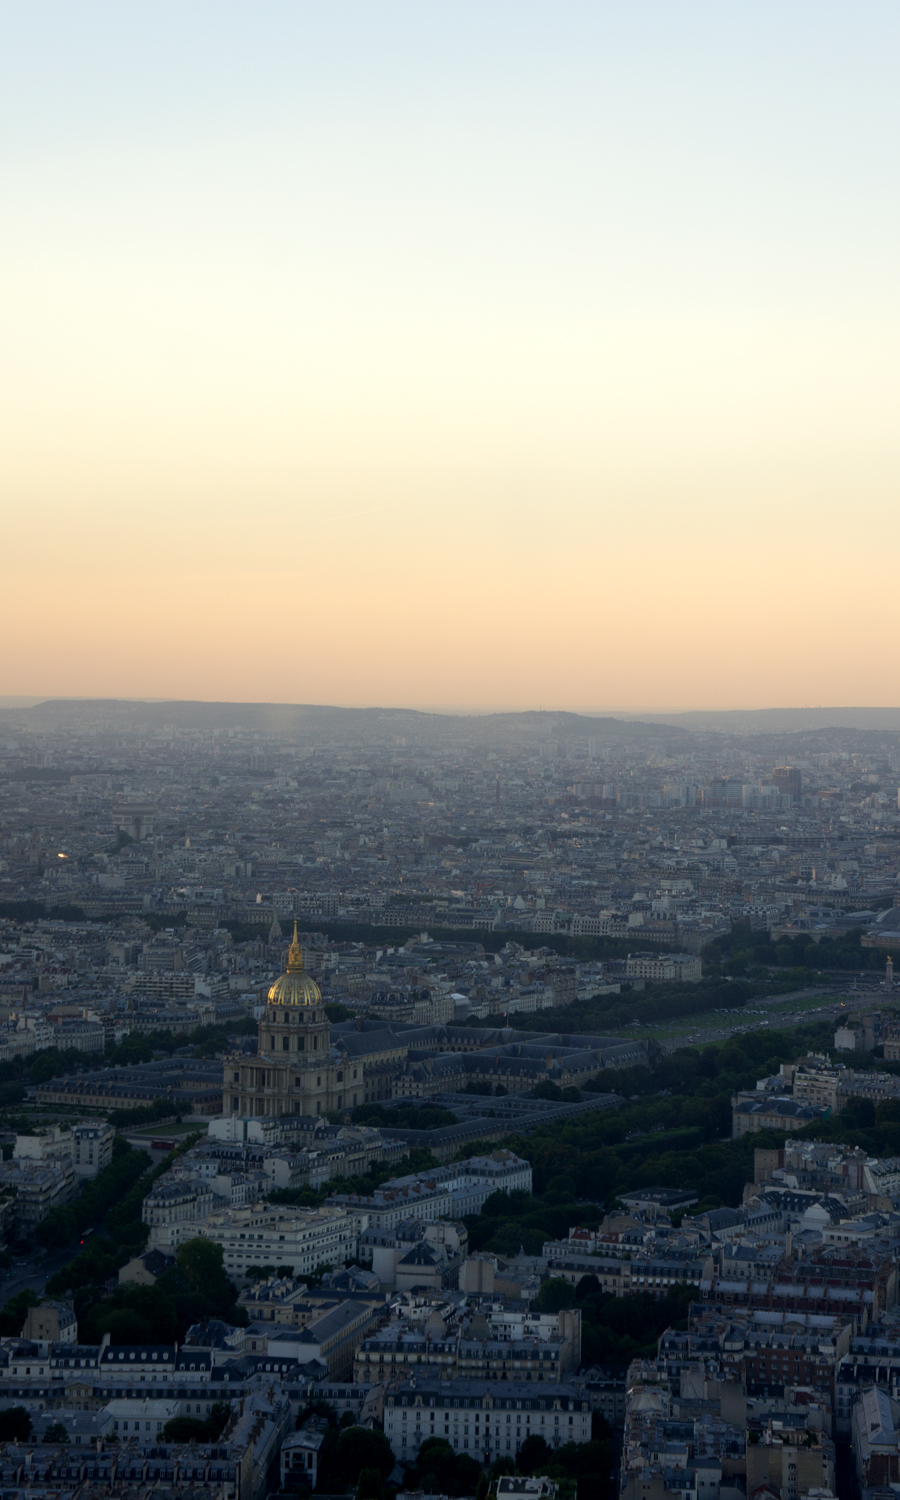 2014-montparnasse-56-tower-paris-france-06